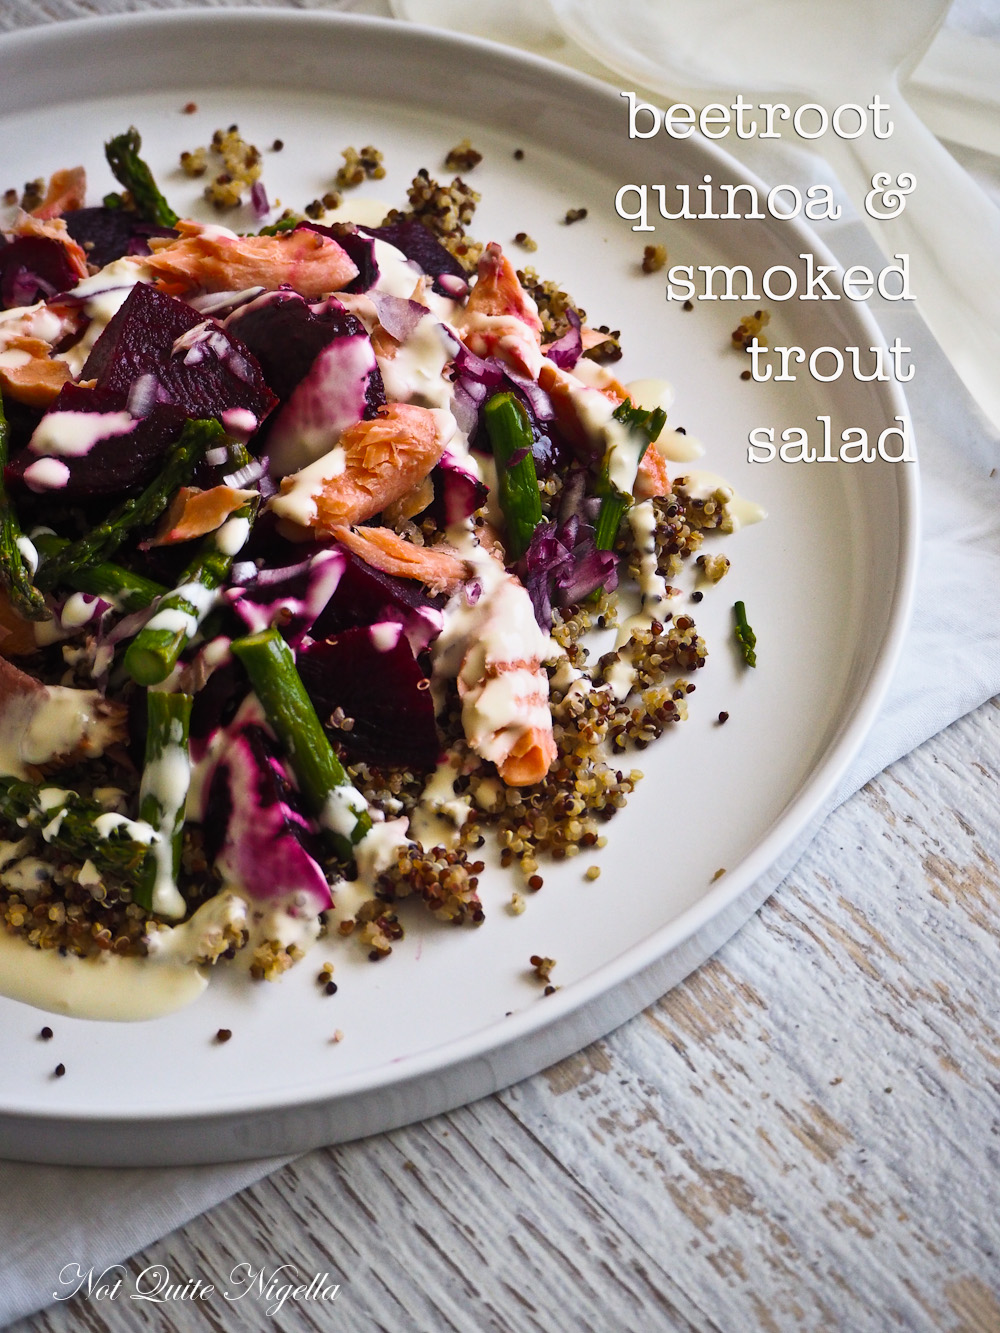 Beetroot Quinoa Salad